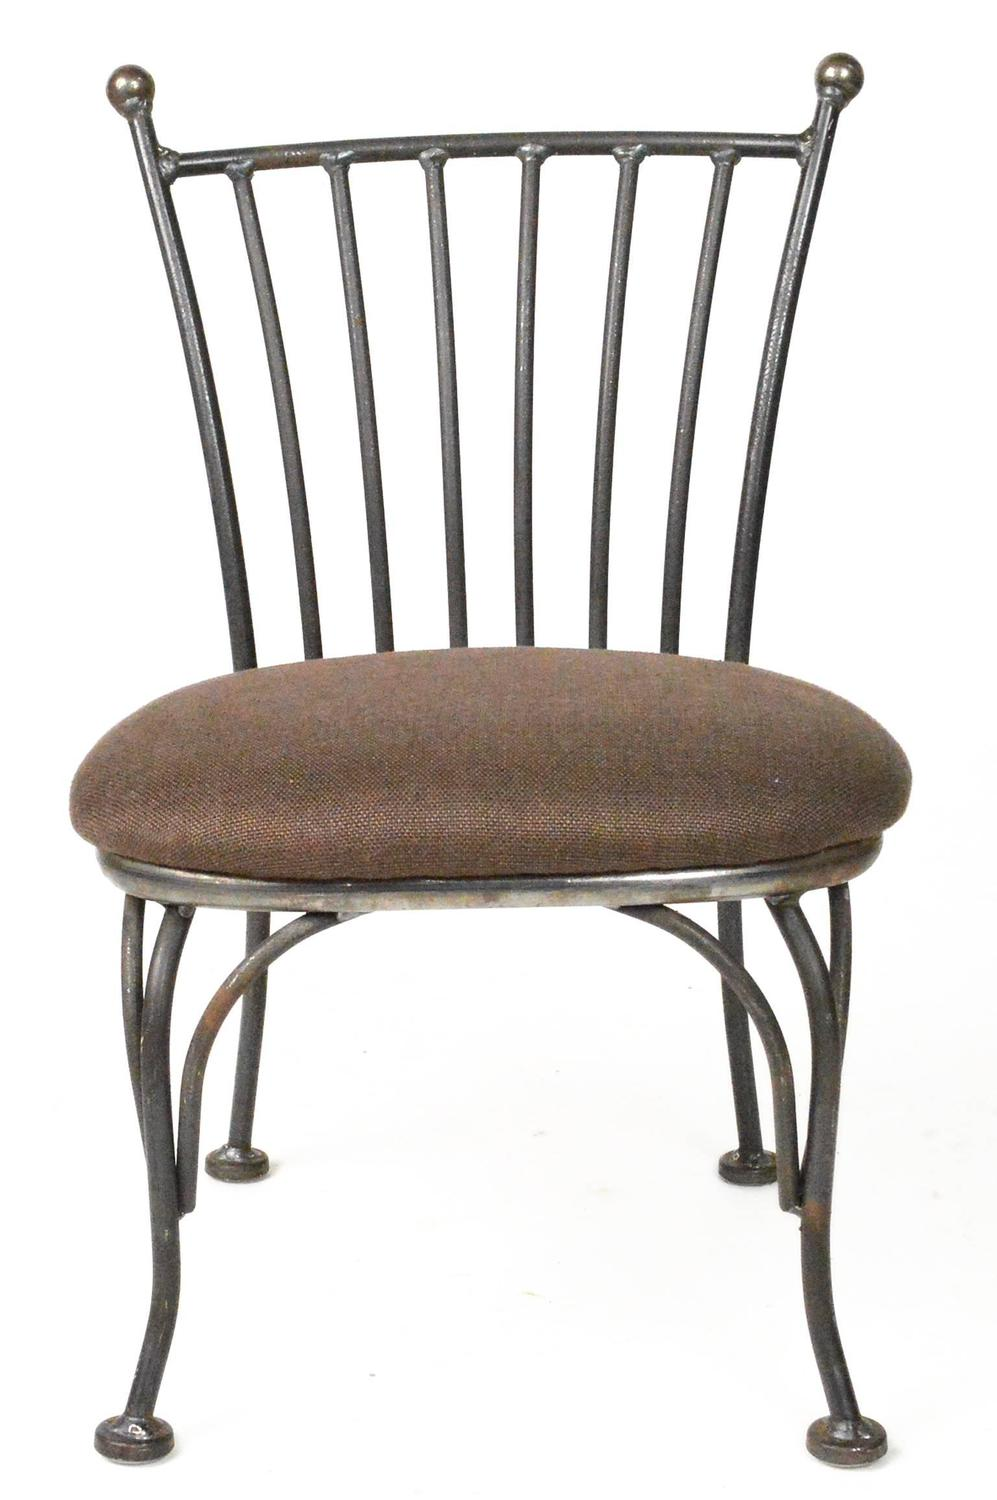 Dorothy Draper Chairs Pair of Child's Iron Bistro Chairs For Sale at 1stdibs